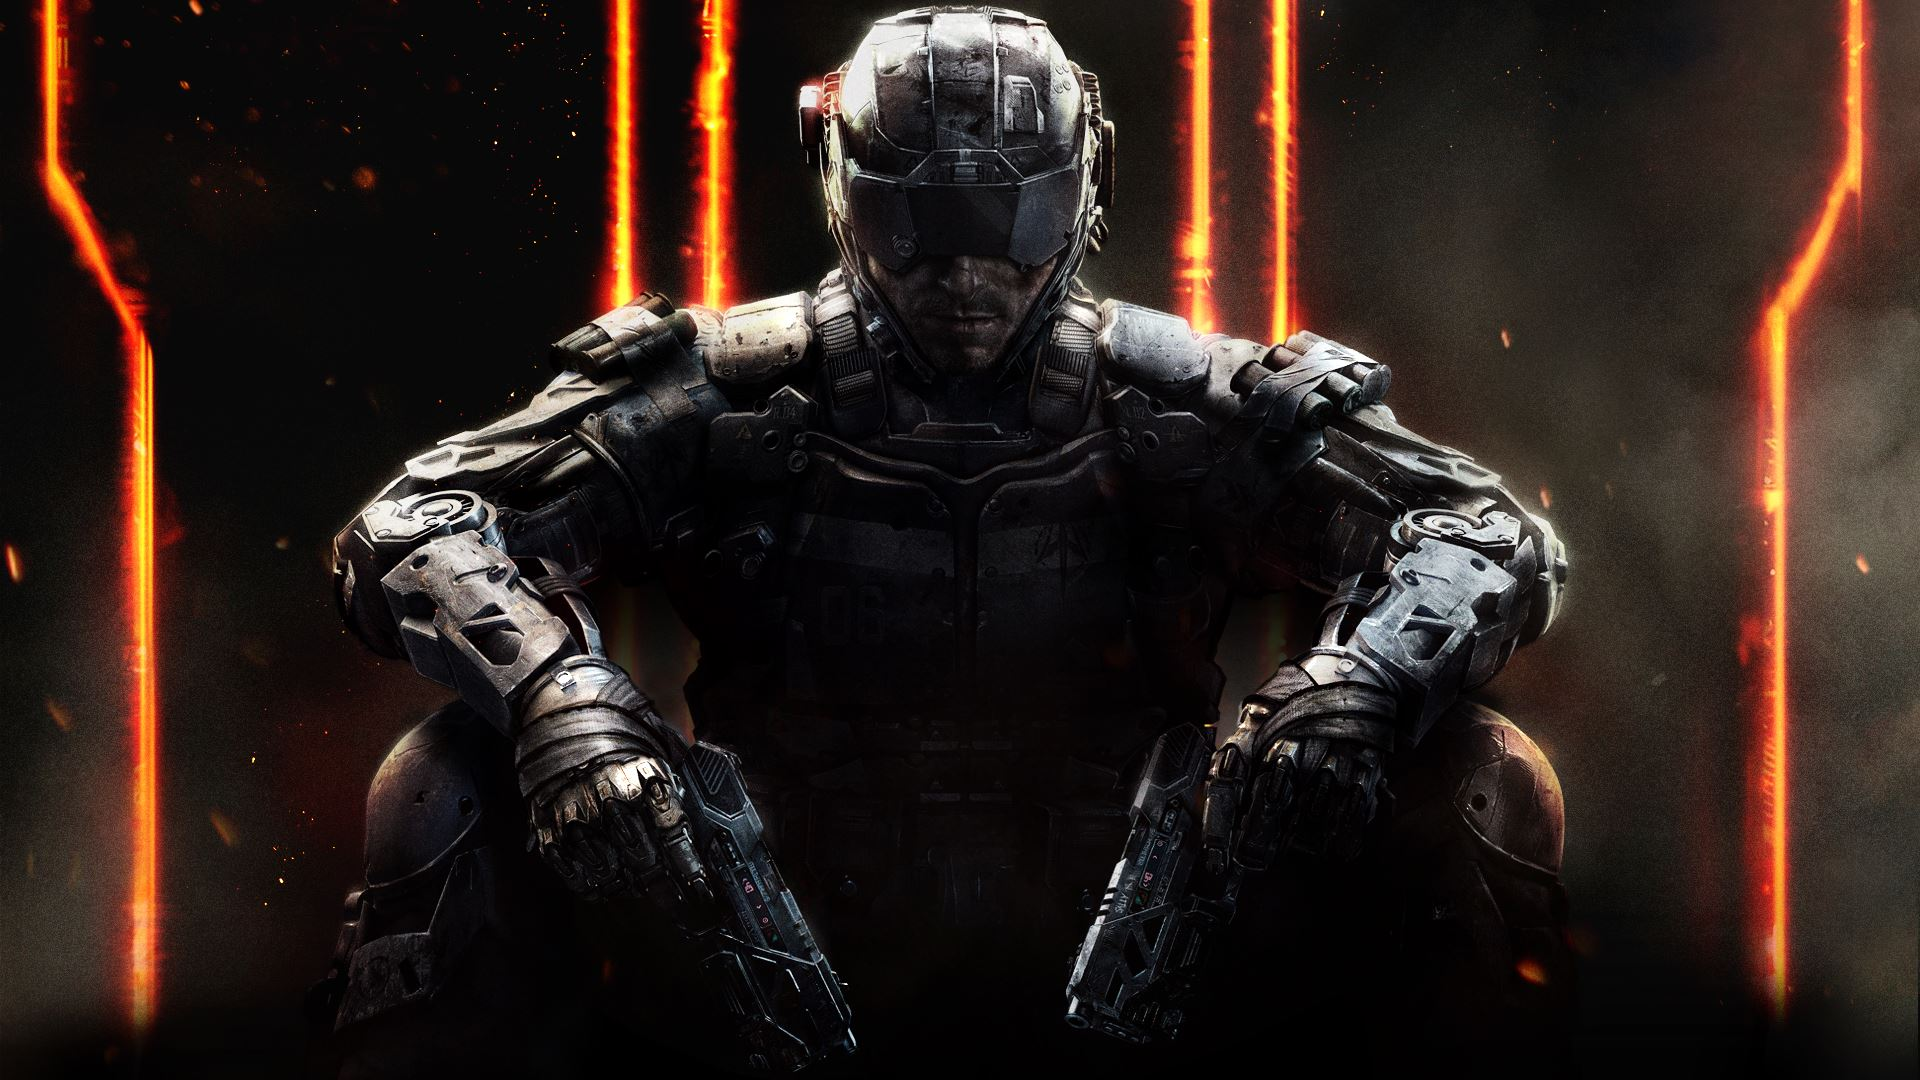 """Black Ops III"" PS3/360 Has No Single-Player Campaign - Those Versions Will Be $10 Cheaper"